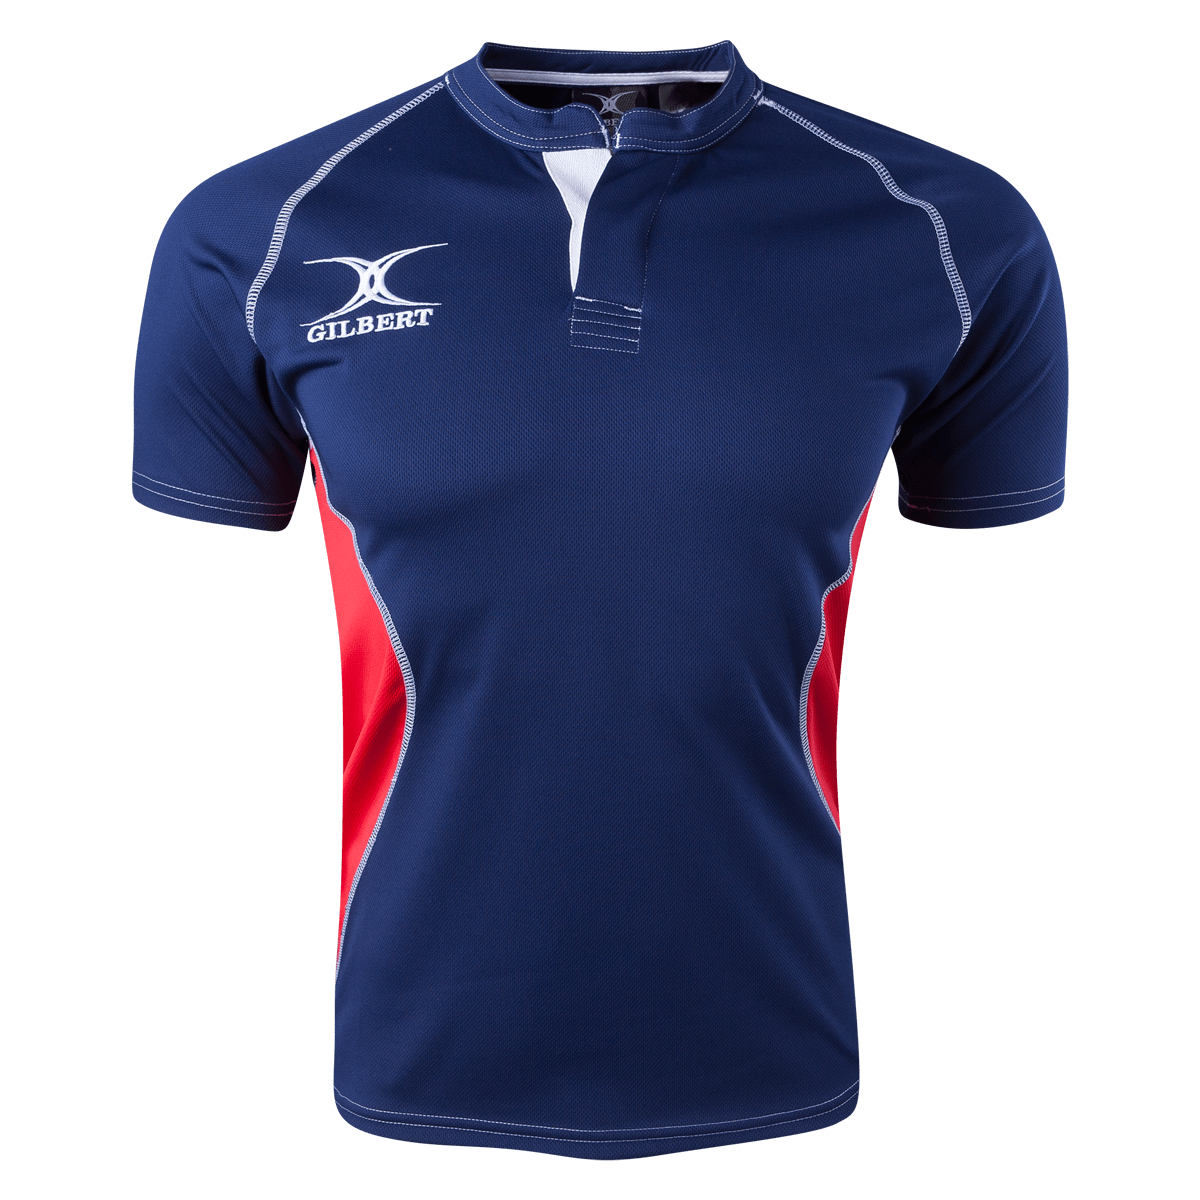 Gilbert Navy/Red Xact V2 Youth Jersey Front With White Gilbert Logo